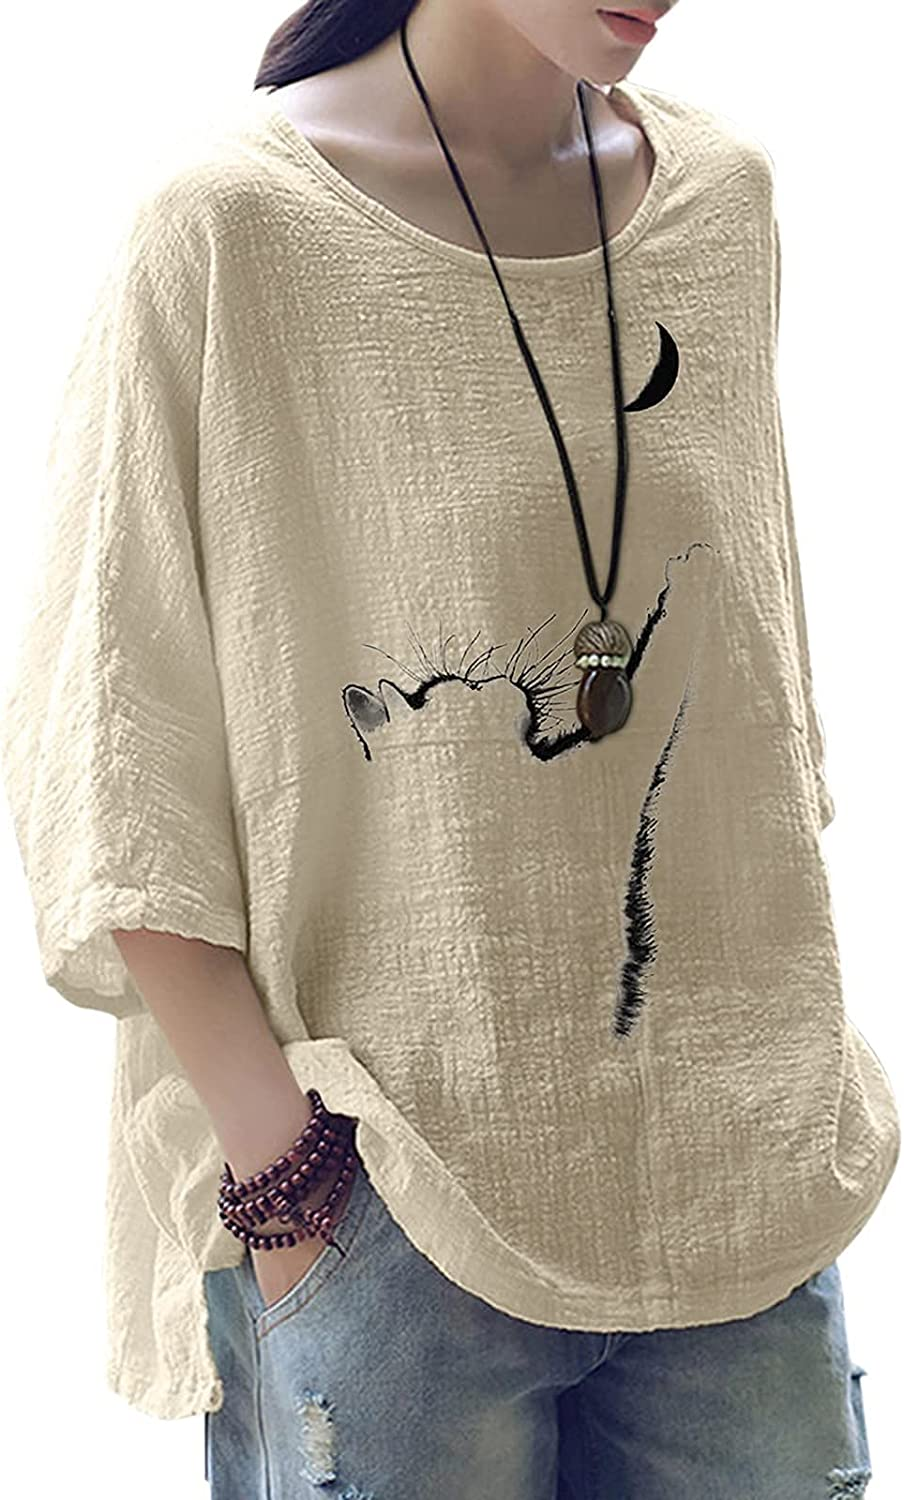 Cute Cat Tops for Women Fall Casual 3/4 Sleeve Linen Shirts Tee Round Neck Fashion Tunic Blouse T Shirts Pullover